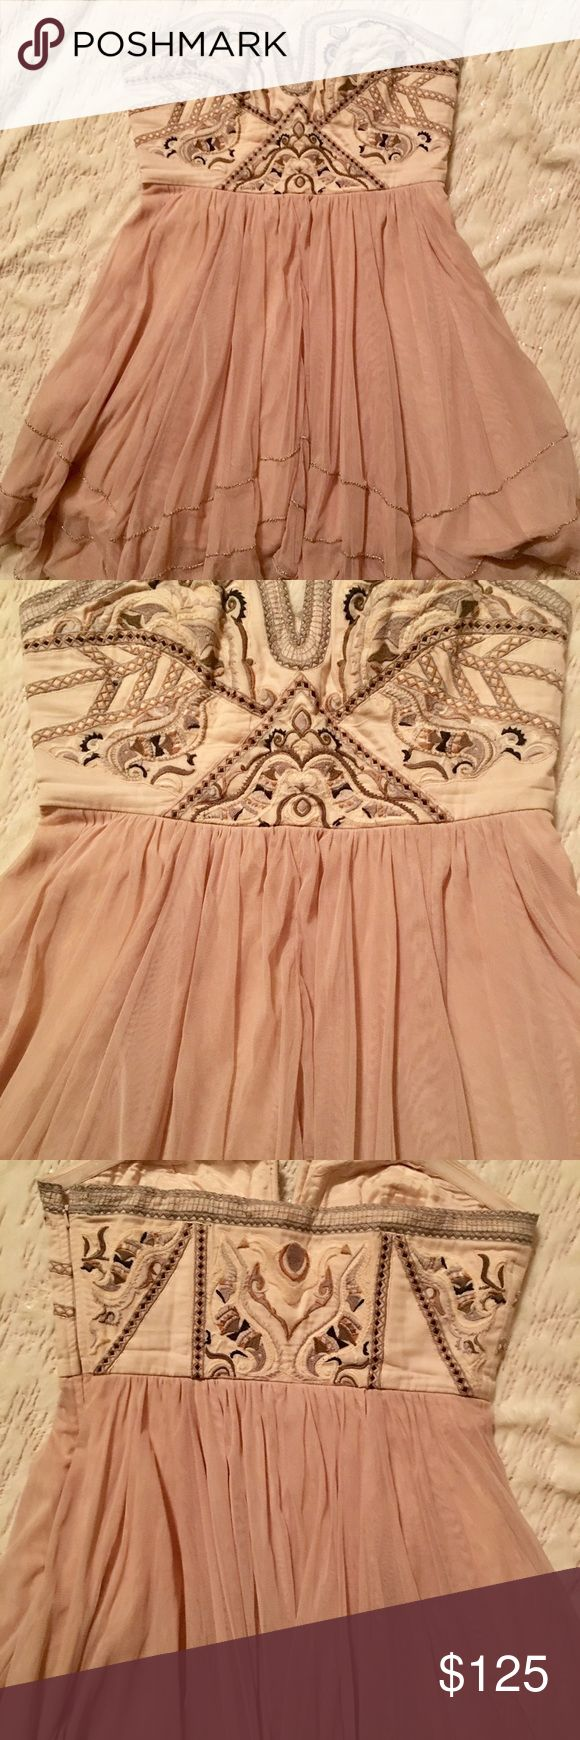 Free People Festival Bodice Dress in nude Free People Festival Bodice Mini Dress size 8 Free People Dresses Strapless